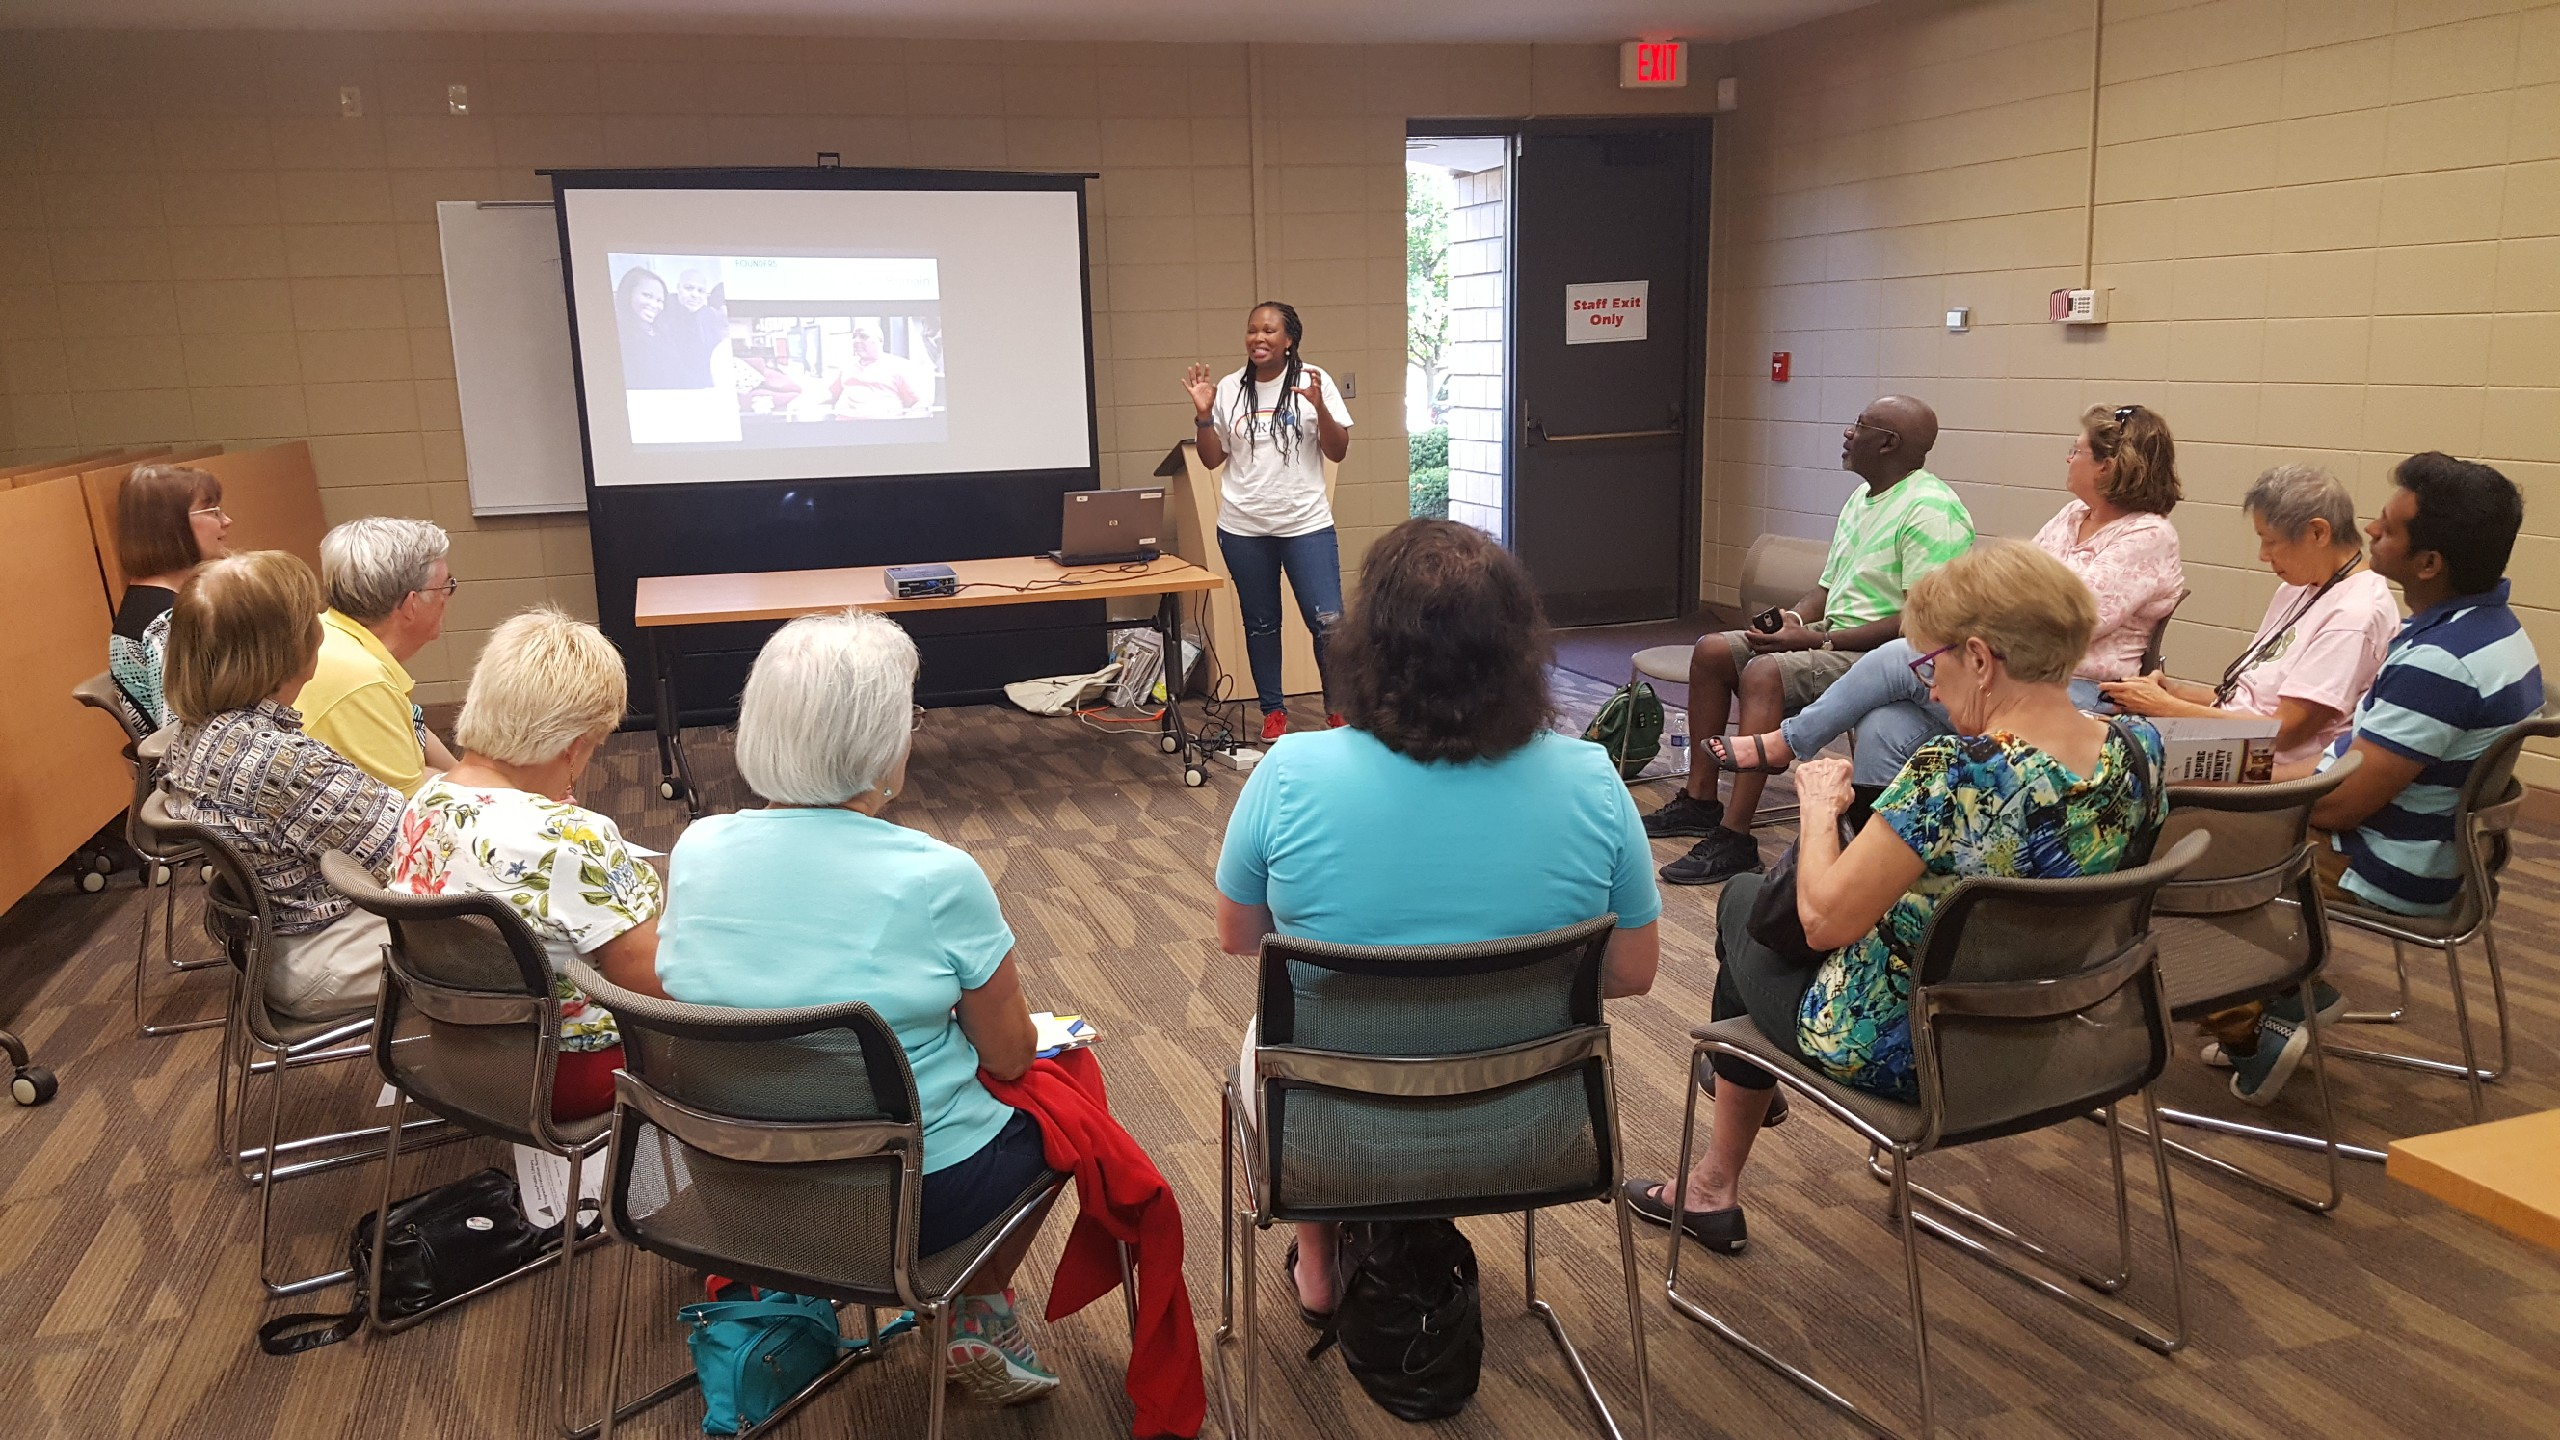 Image from August 27, 2019 Peoria Illinois Speaks session with Nikki Romain